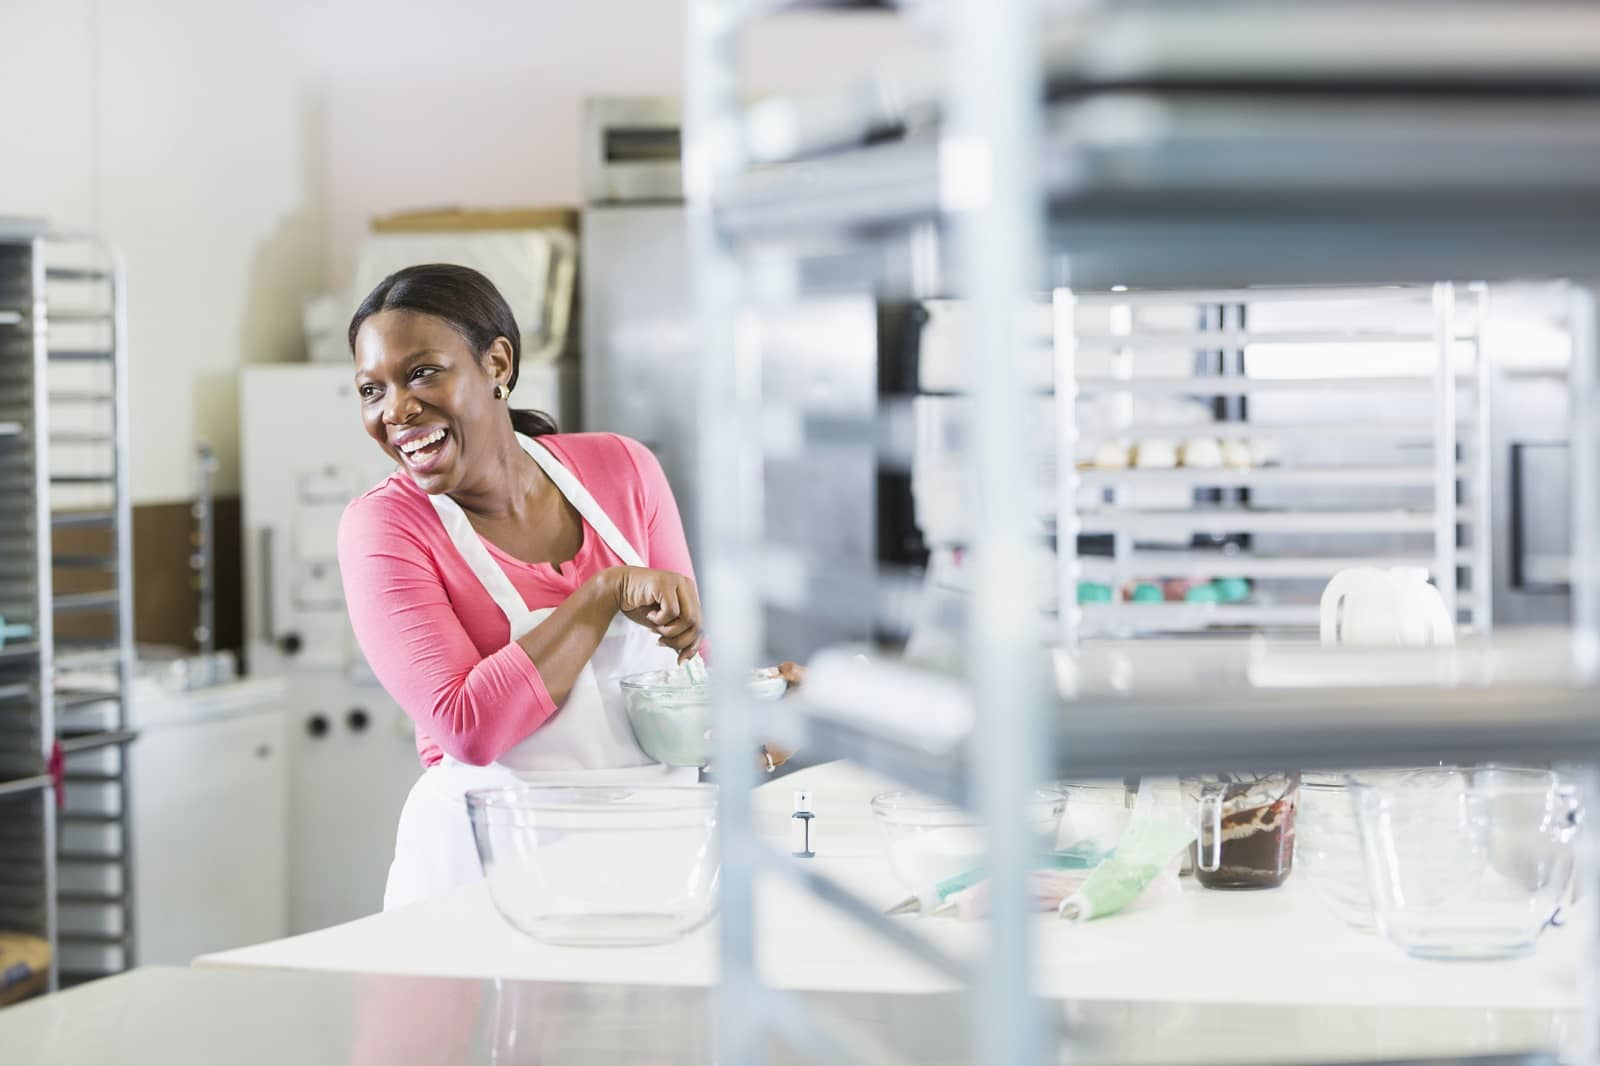 Woman working in bakery kitchen